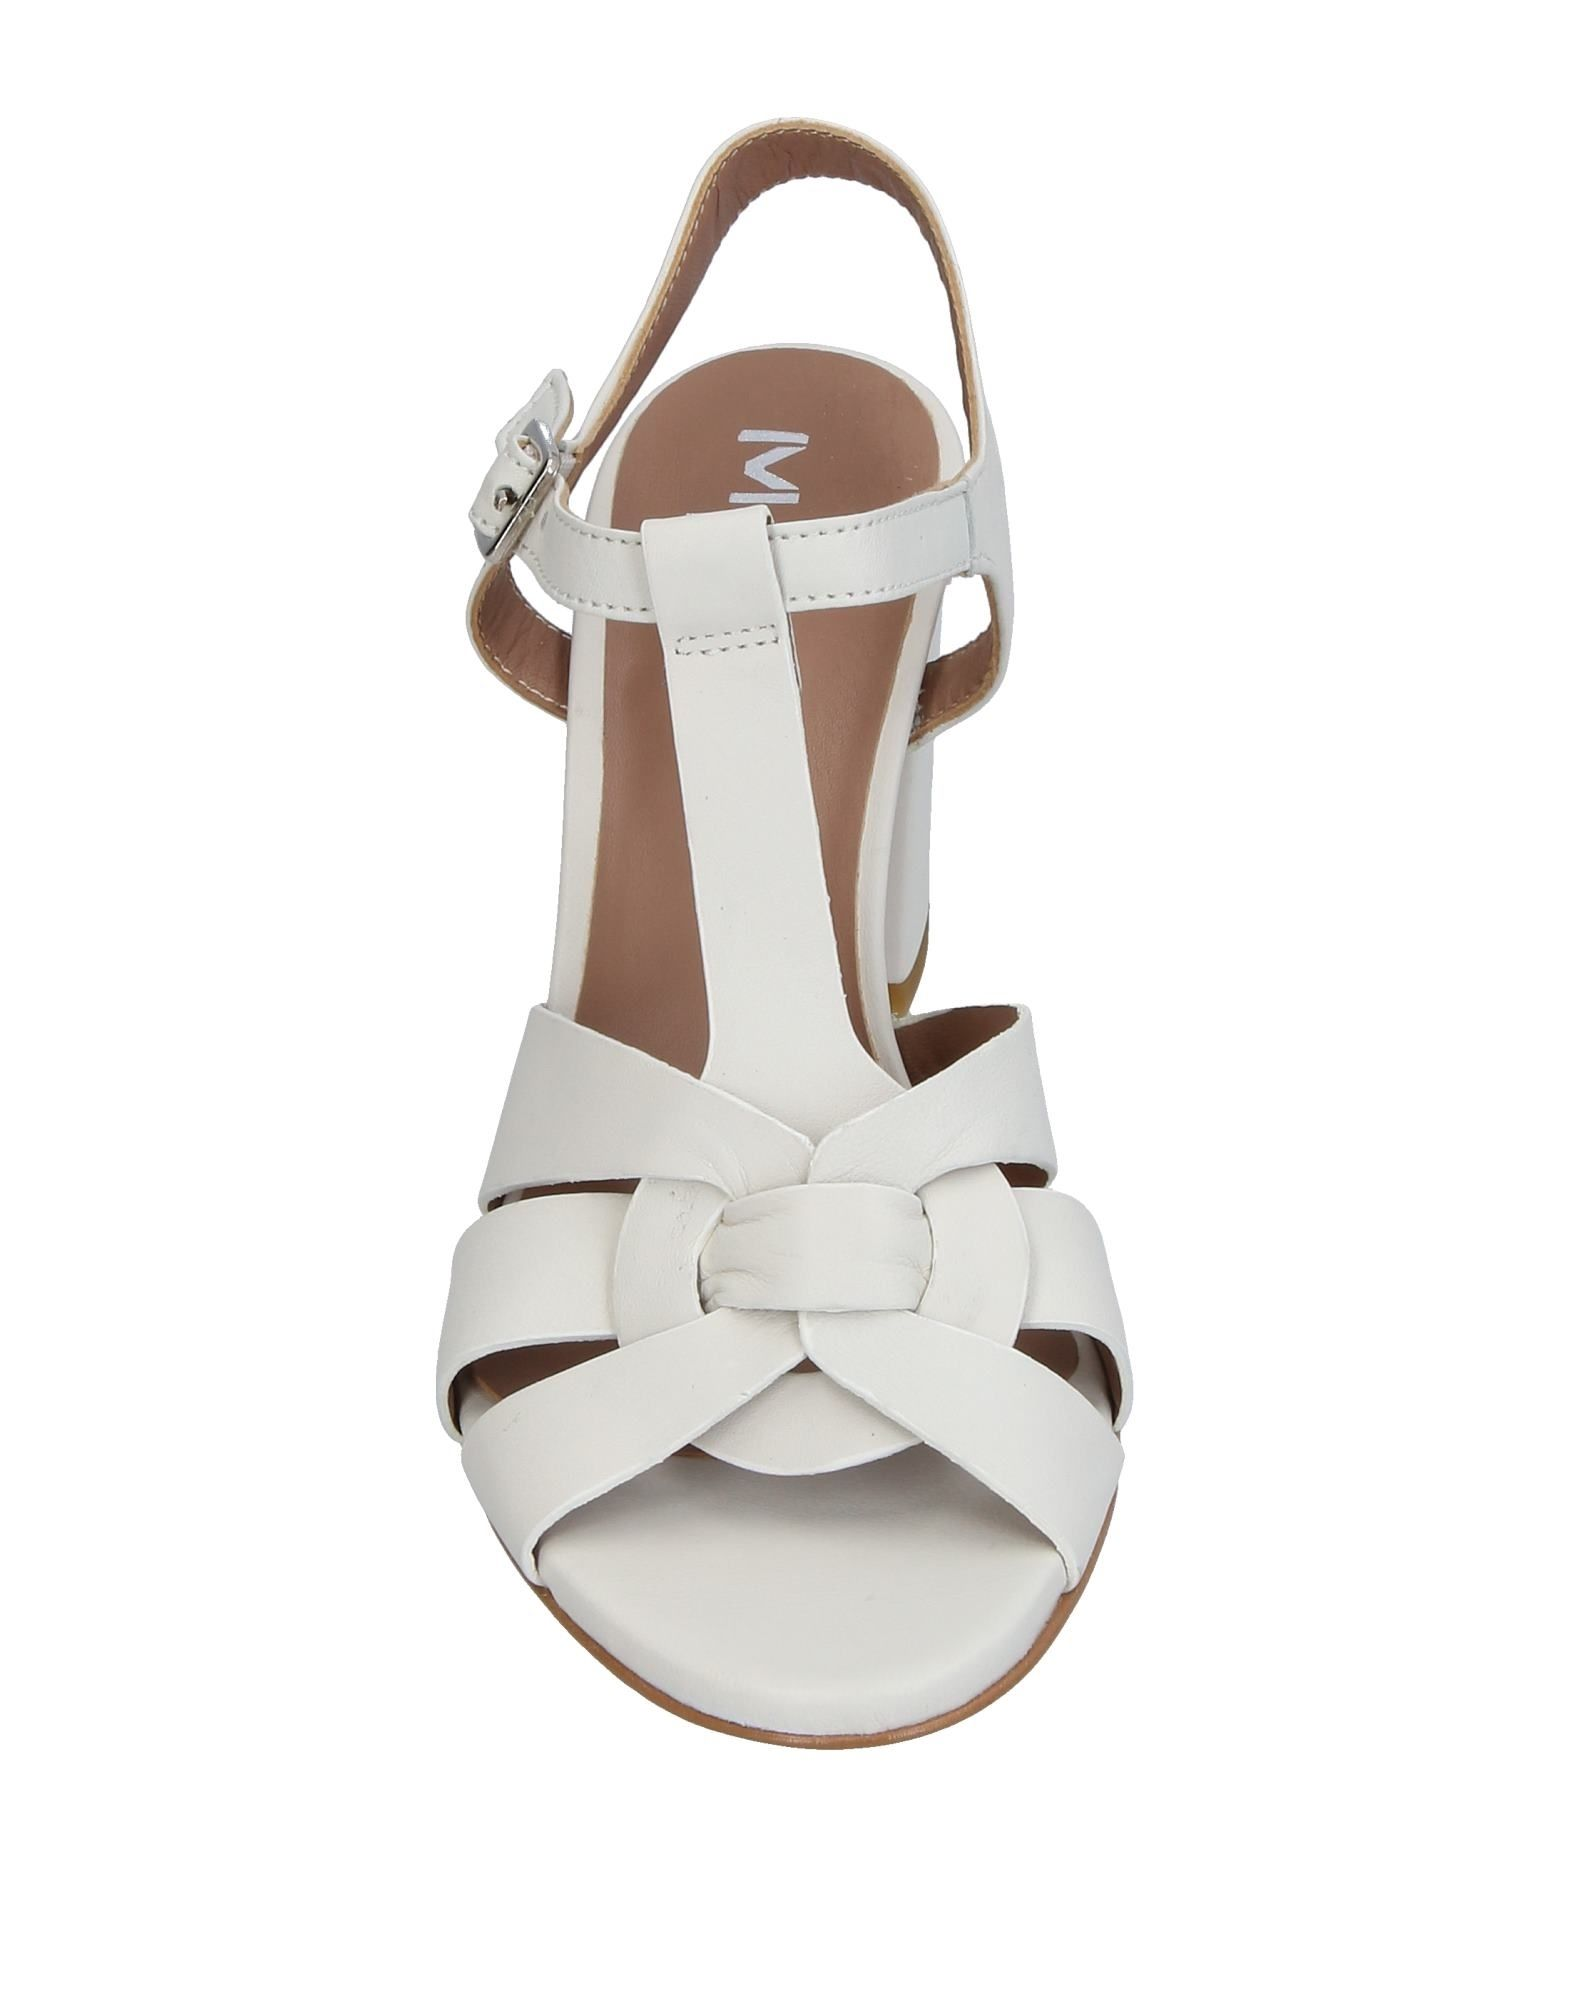 Sandales Mally Femme - Sandales Mally sur